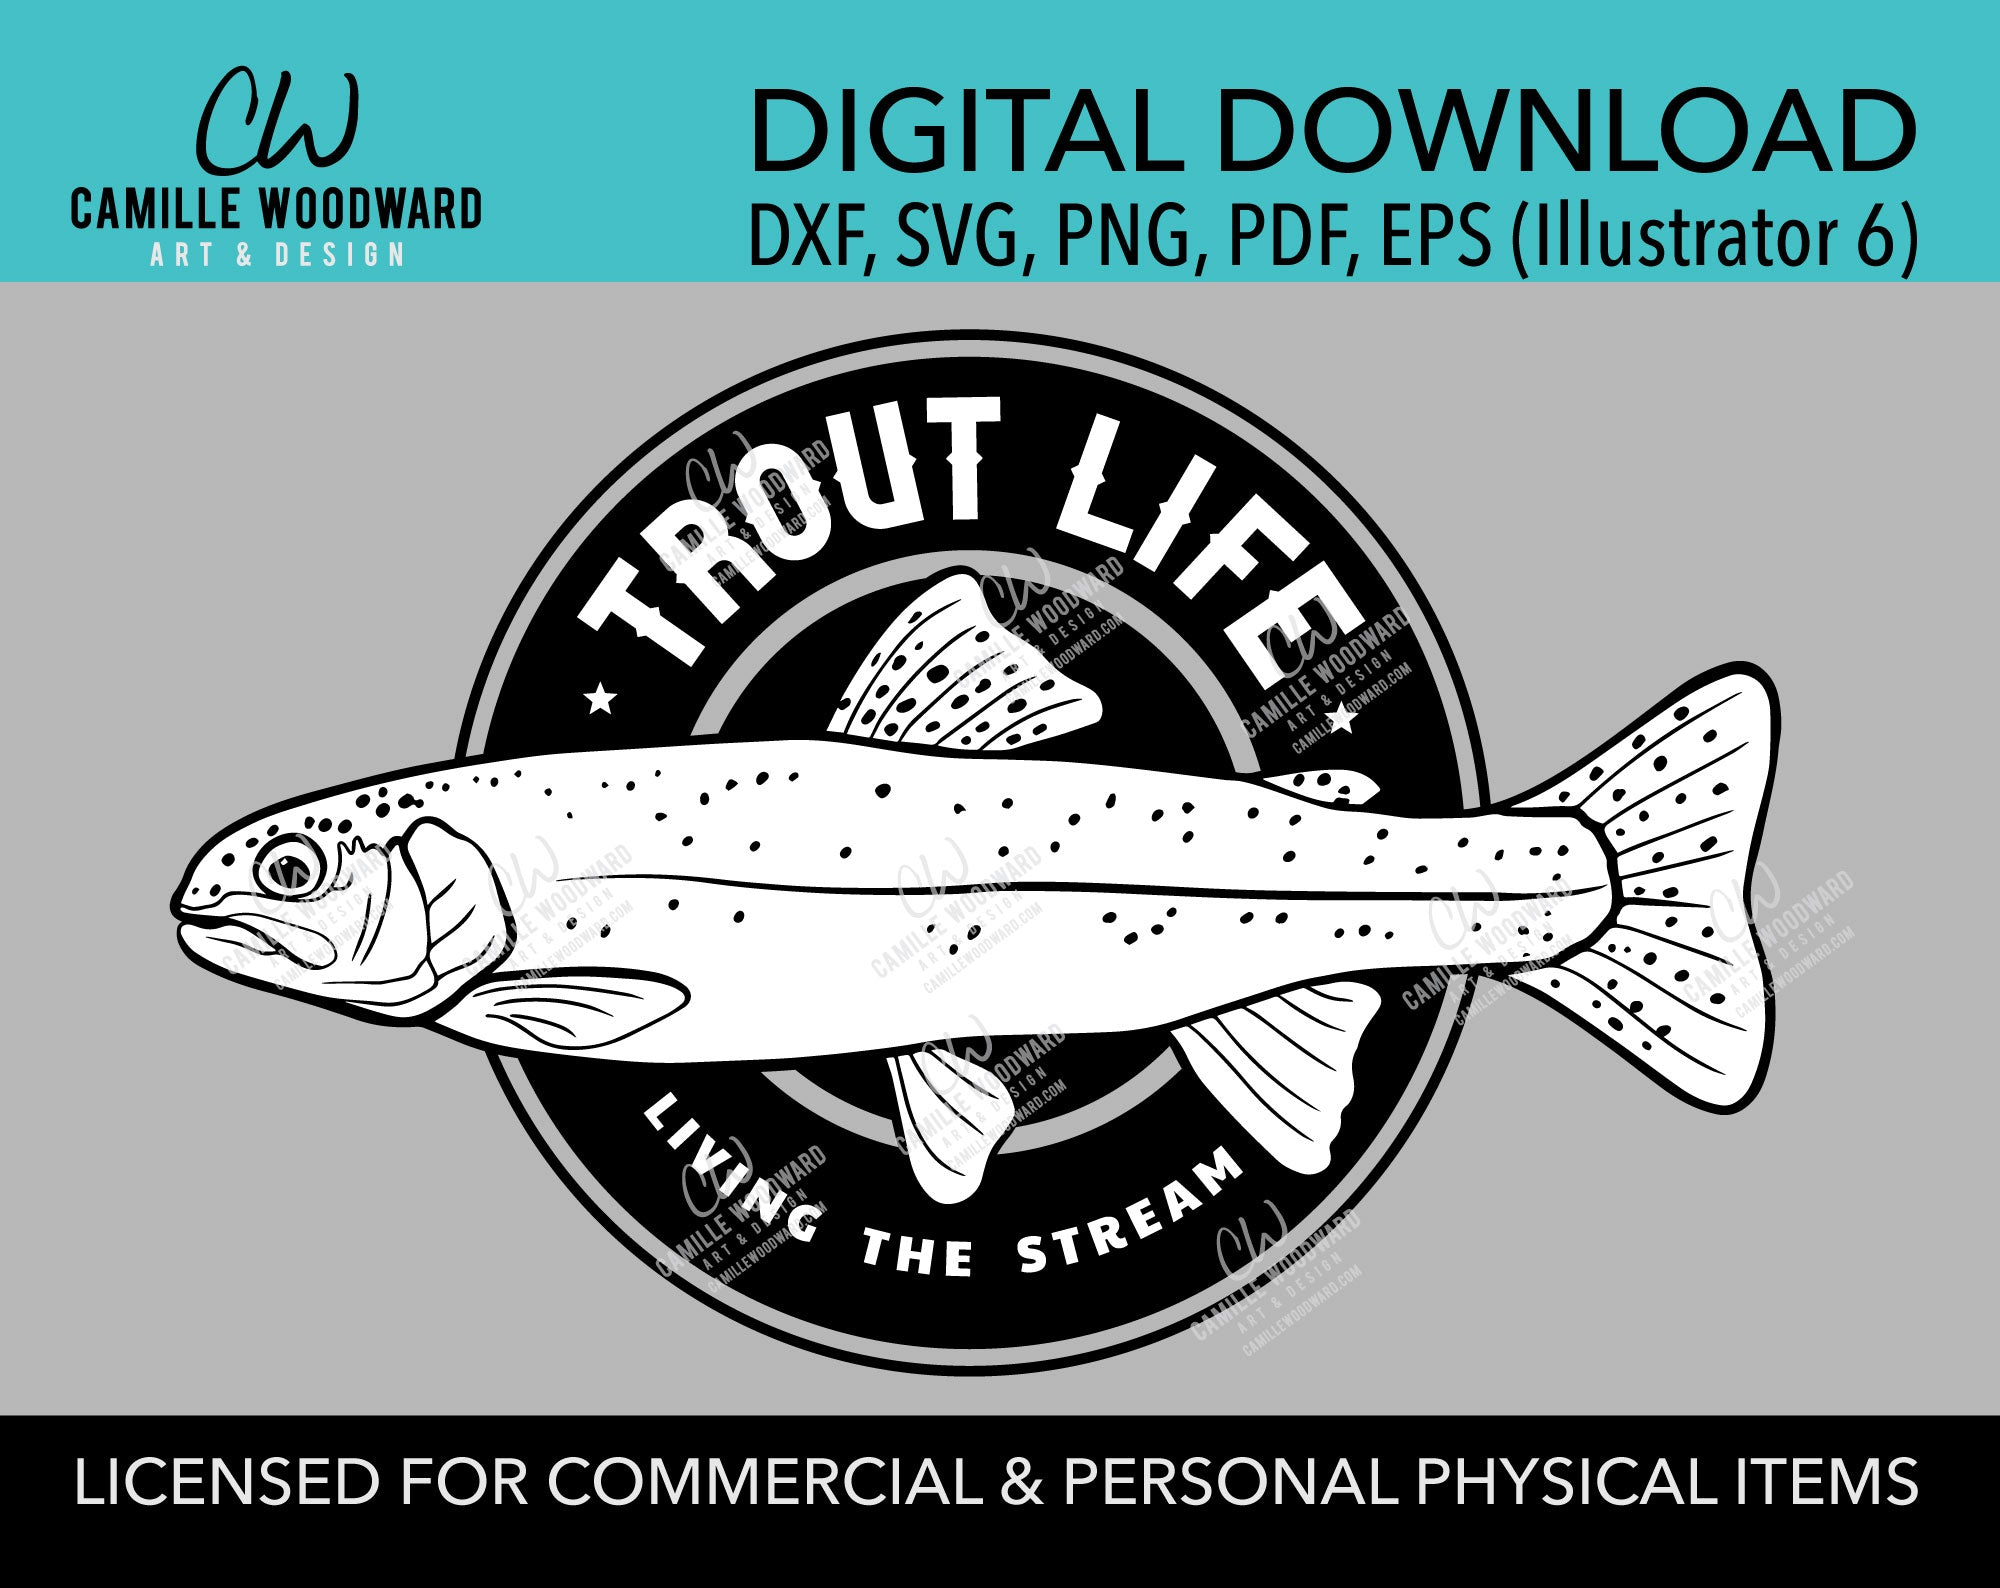 Trout Life SVG, Funny Fishing SVG, Wishing I Was Fishing, Father's Day, Dad, Mom, Retirement Gone Fishing - Digital Download Iron On